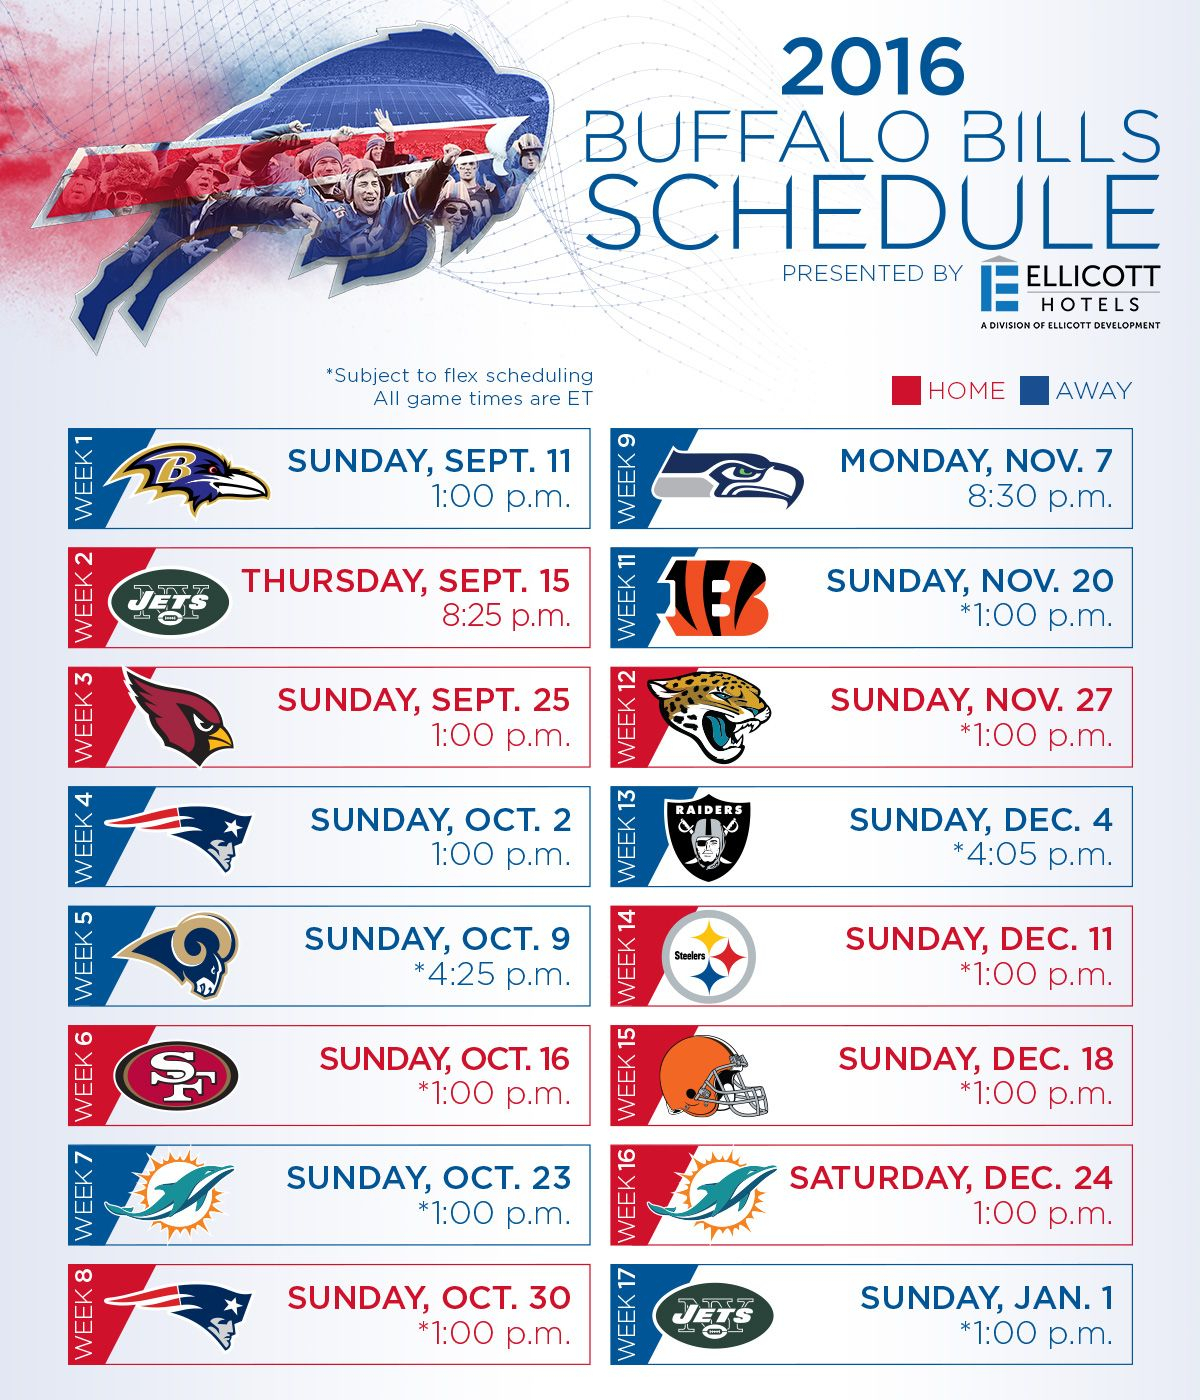 Buffalo Bills Football Is Coming Soon! Check Out The 2016